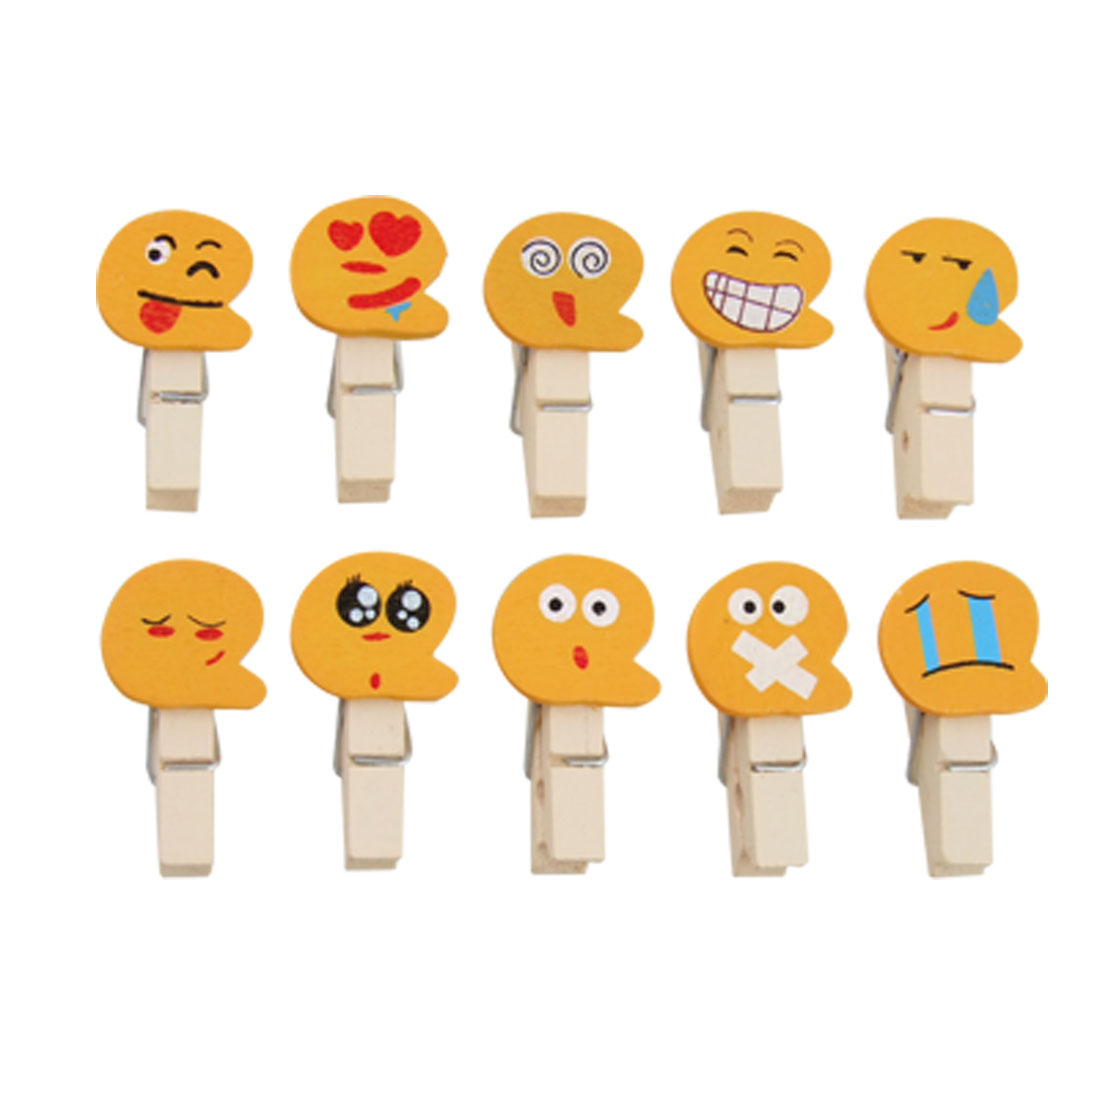 10 Pcs Yellow Face Appearance Design Wooden Spring File Towel Clip